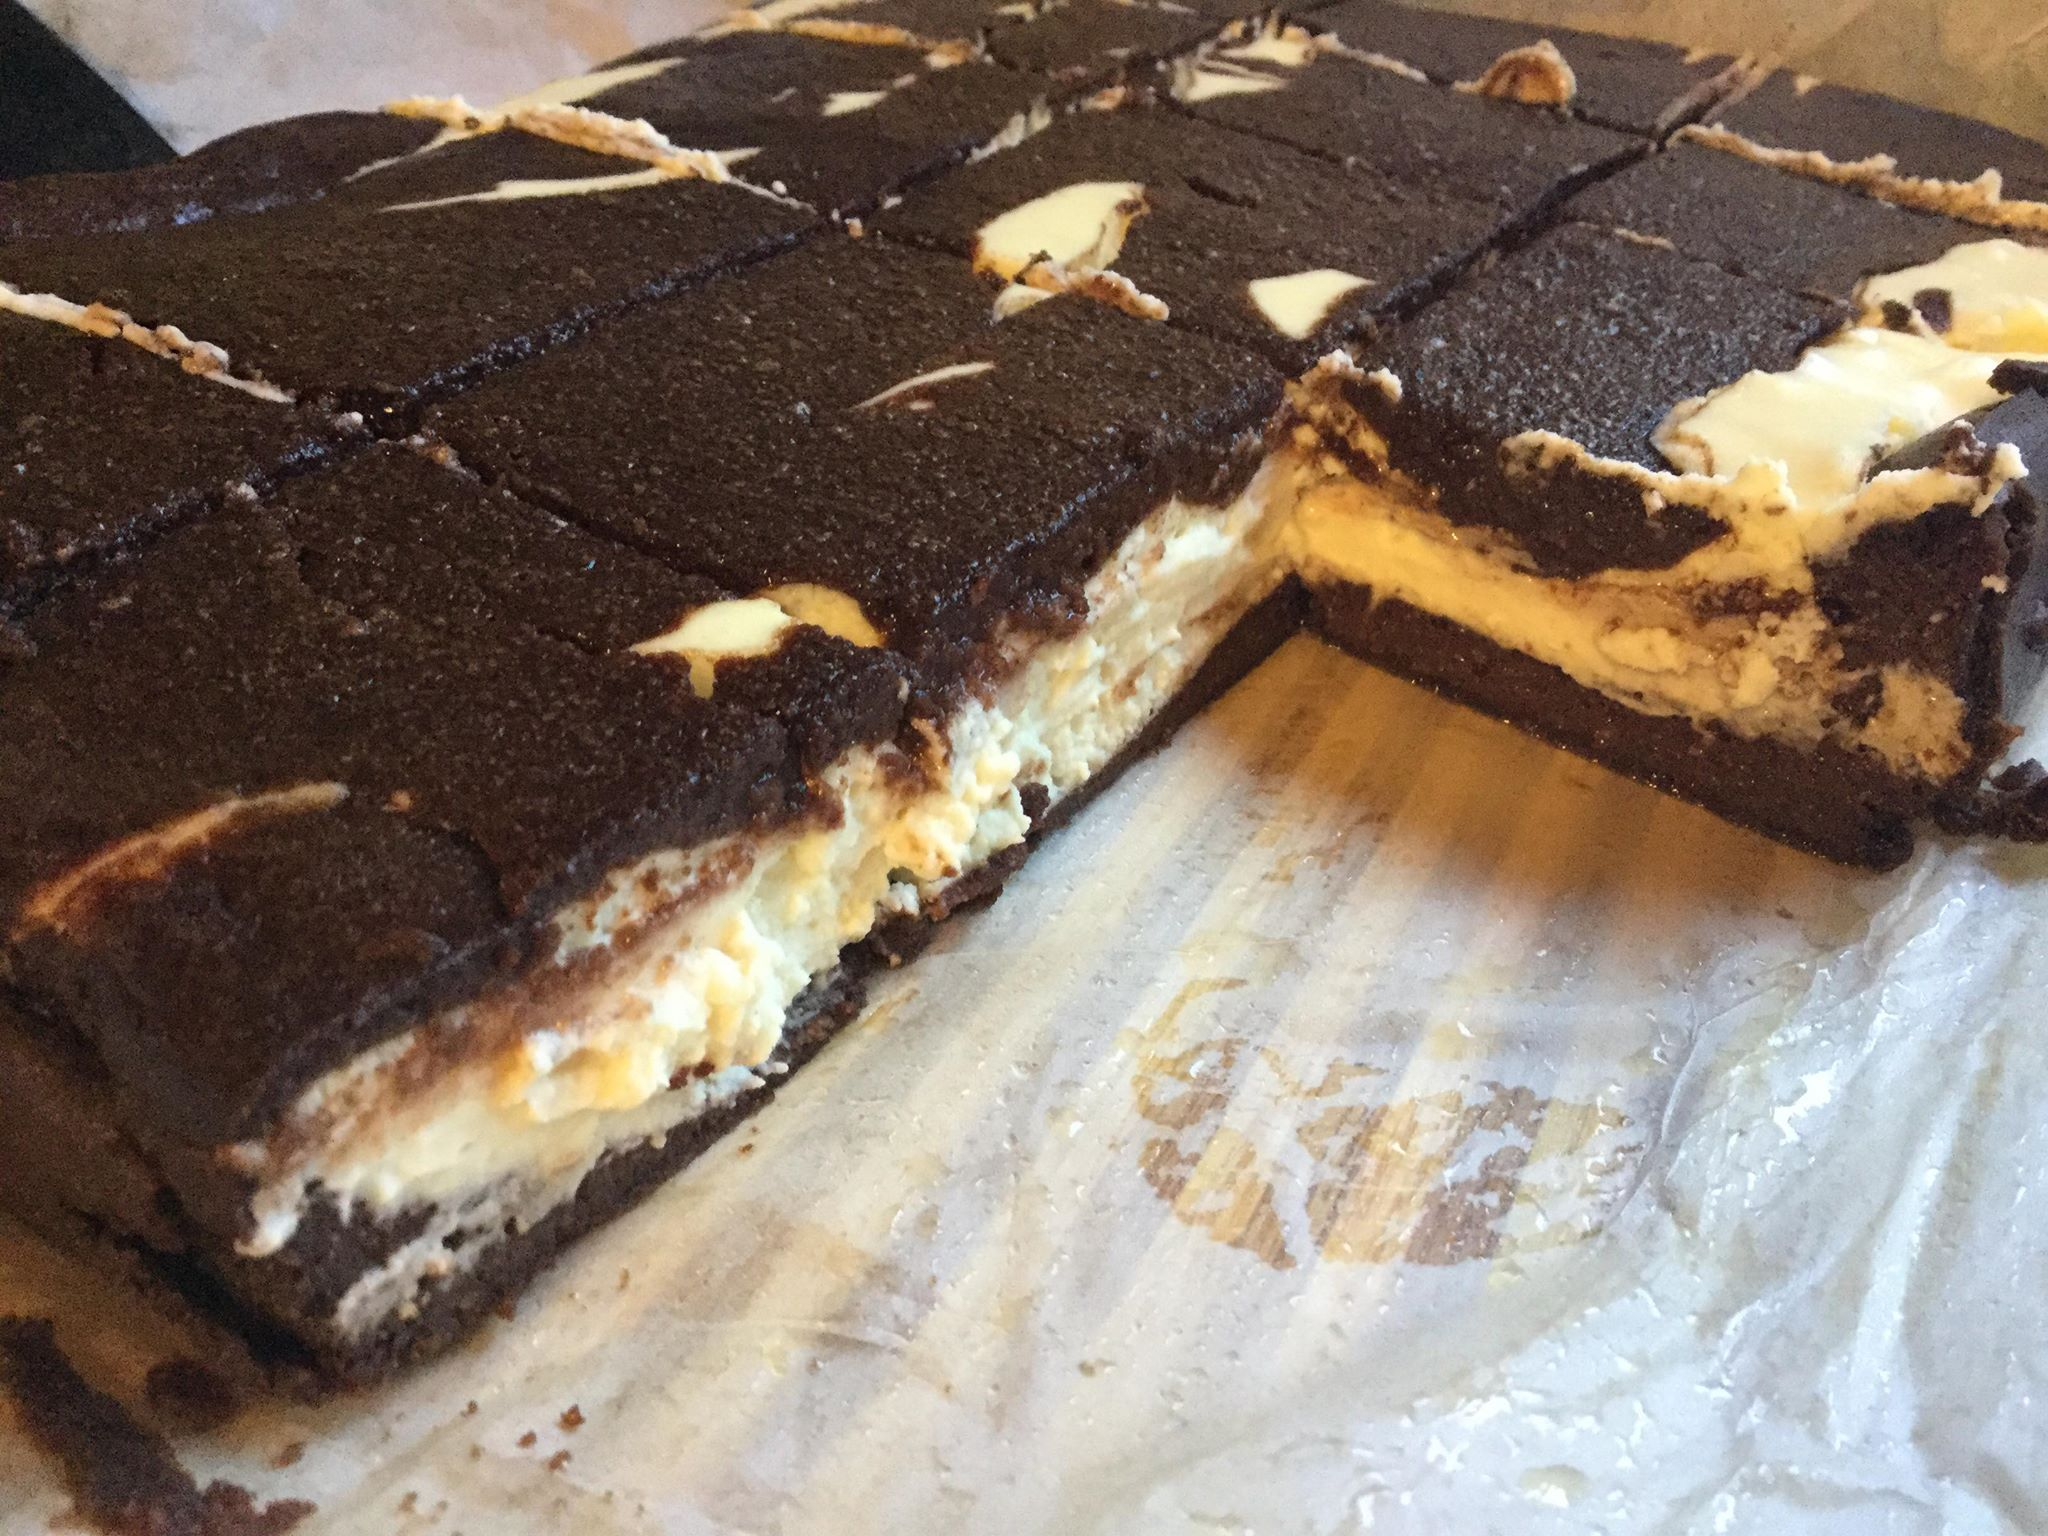 "Recipe creator Nicole Robinson says, ""This cheesecake brownie recipe is for people on the keto diet or anyone with a sweet tooth, for that matter."" Two classic desserts come together to make one keto dieter's decadent treat."